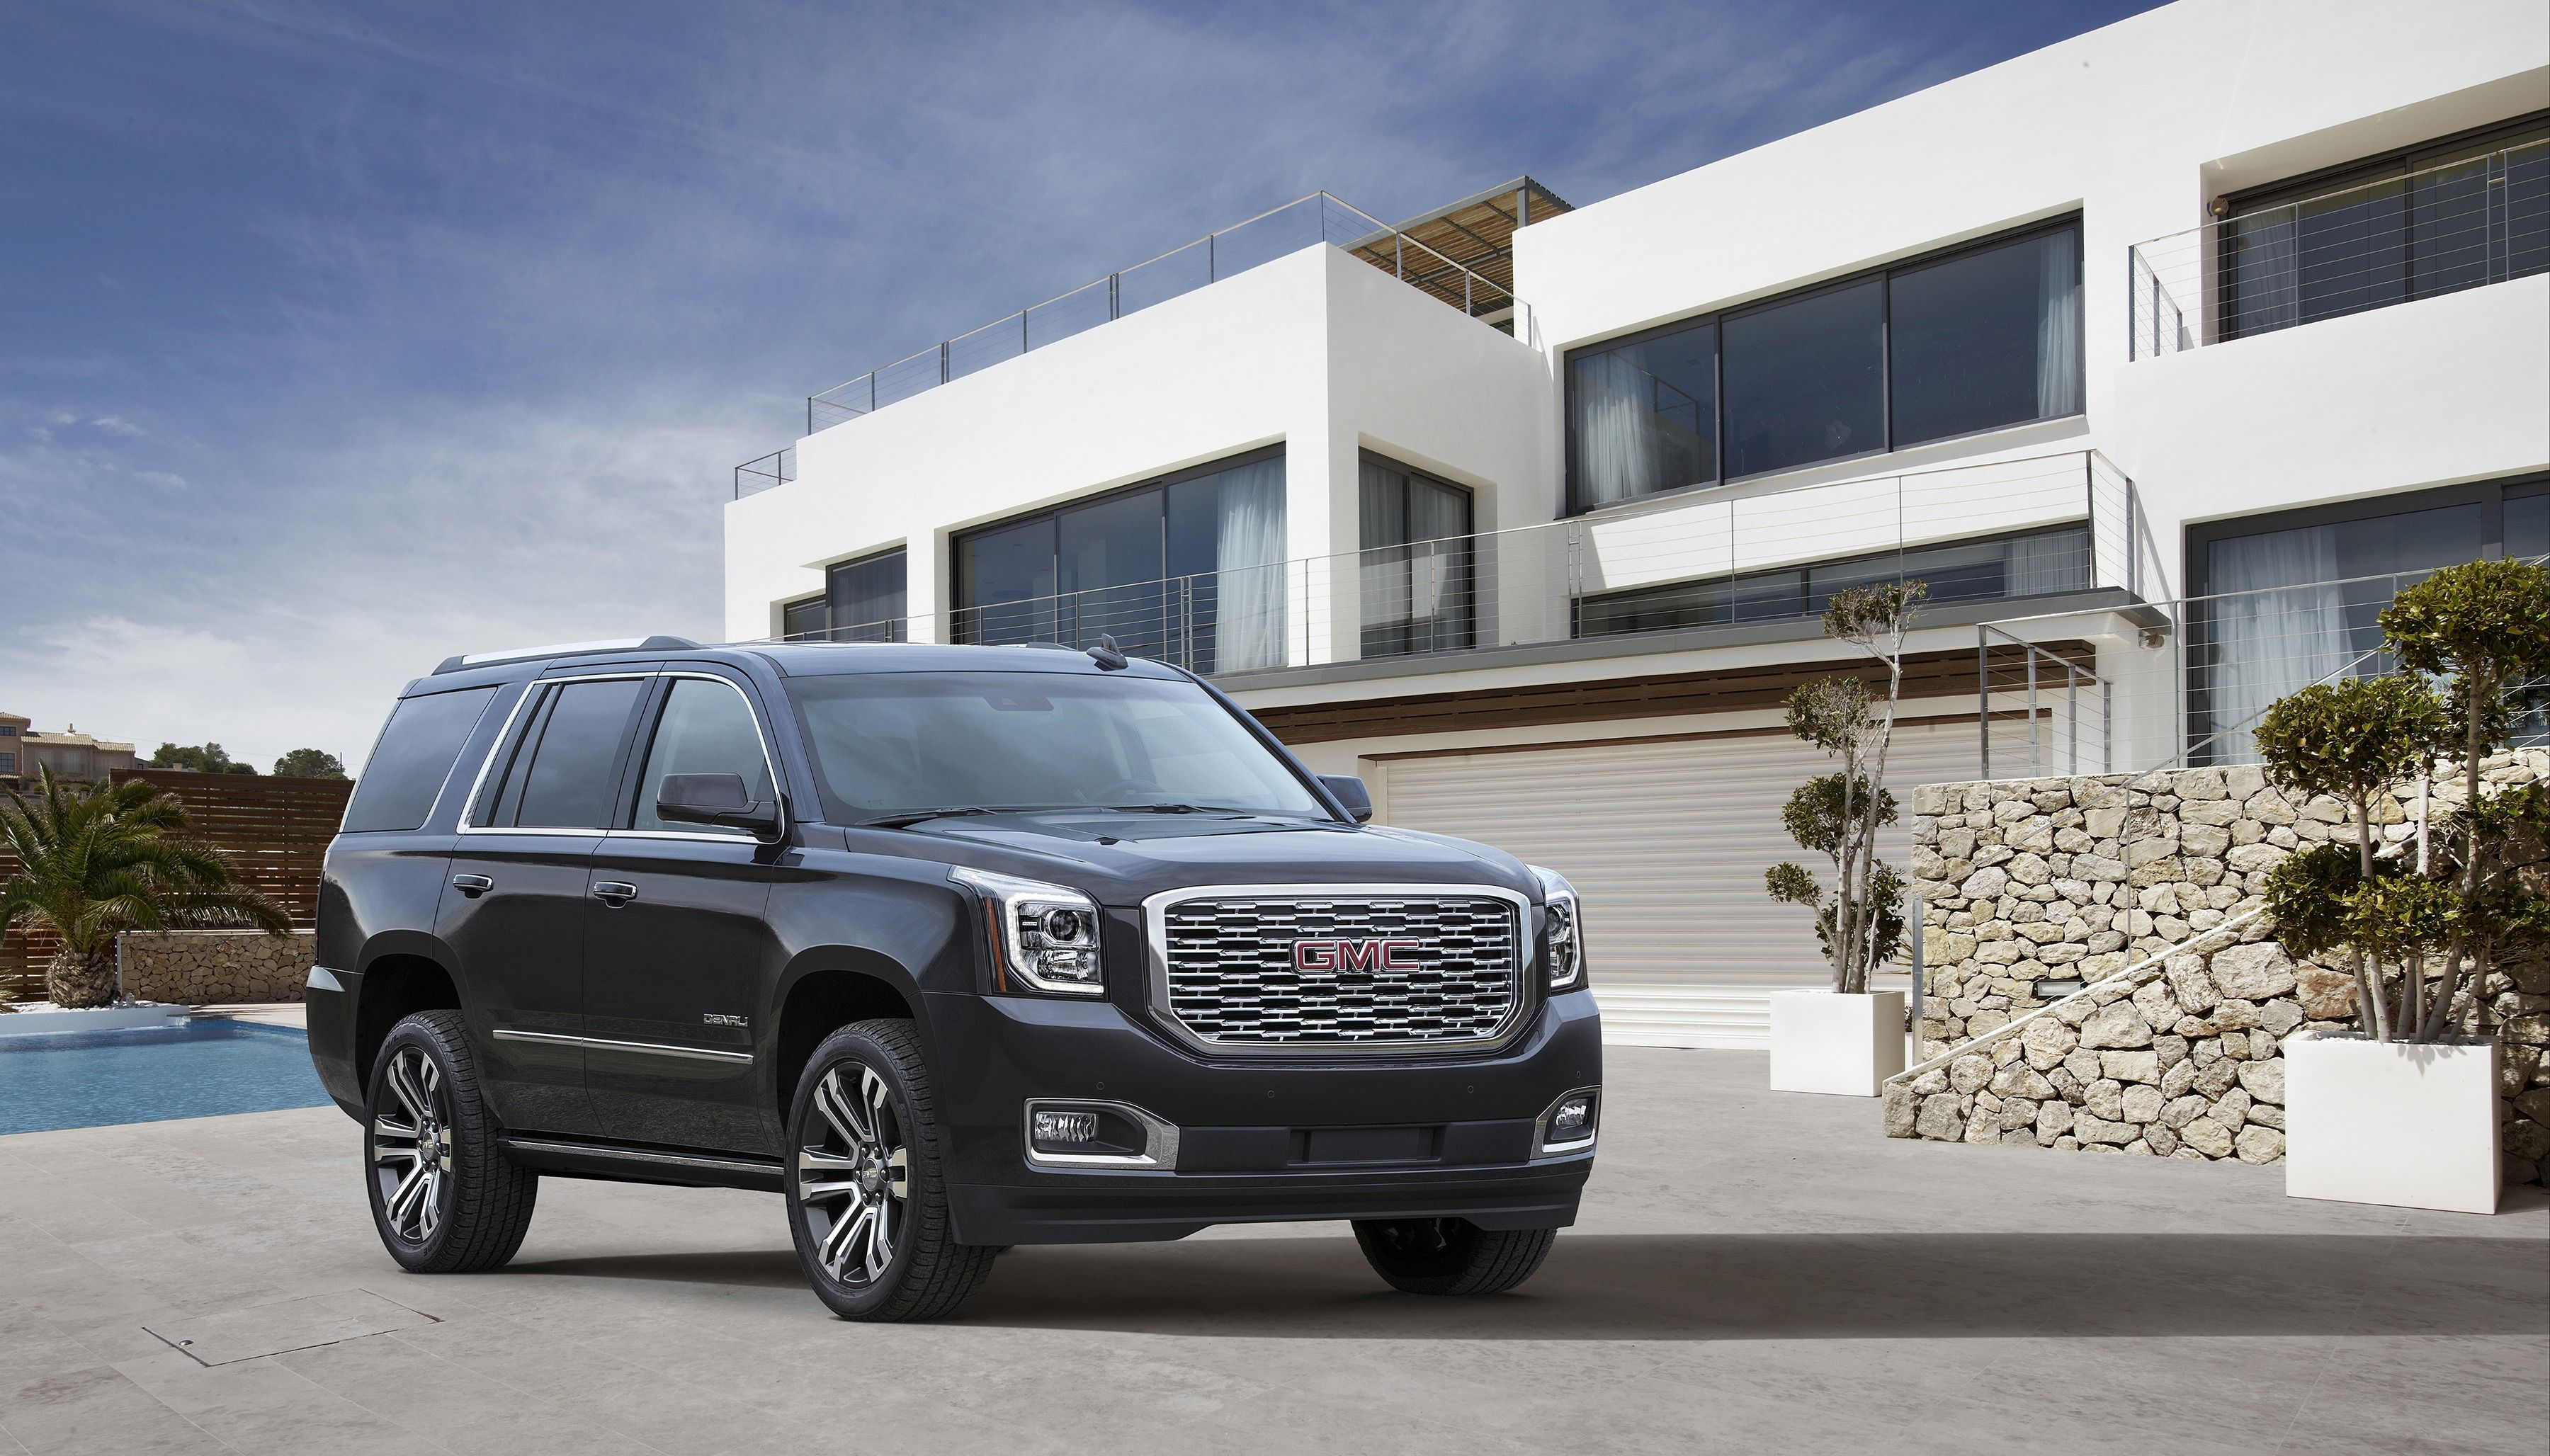 The 2018 Gmc Yukon Denali offers outstanding style and technology both inside and out See interior & exterior photos 2018 gmc yukon denali interior